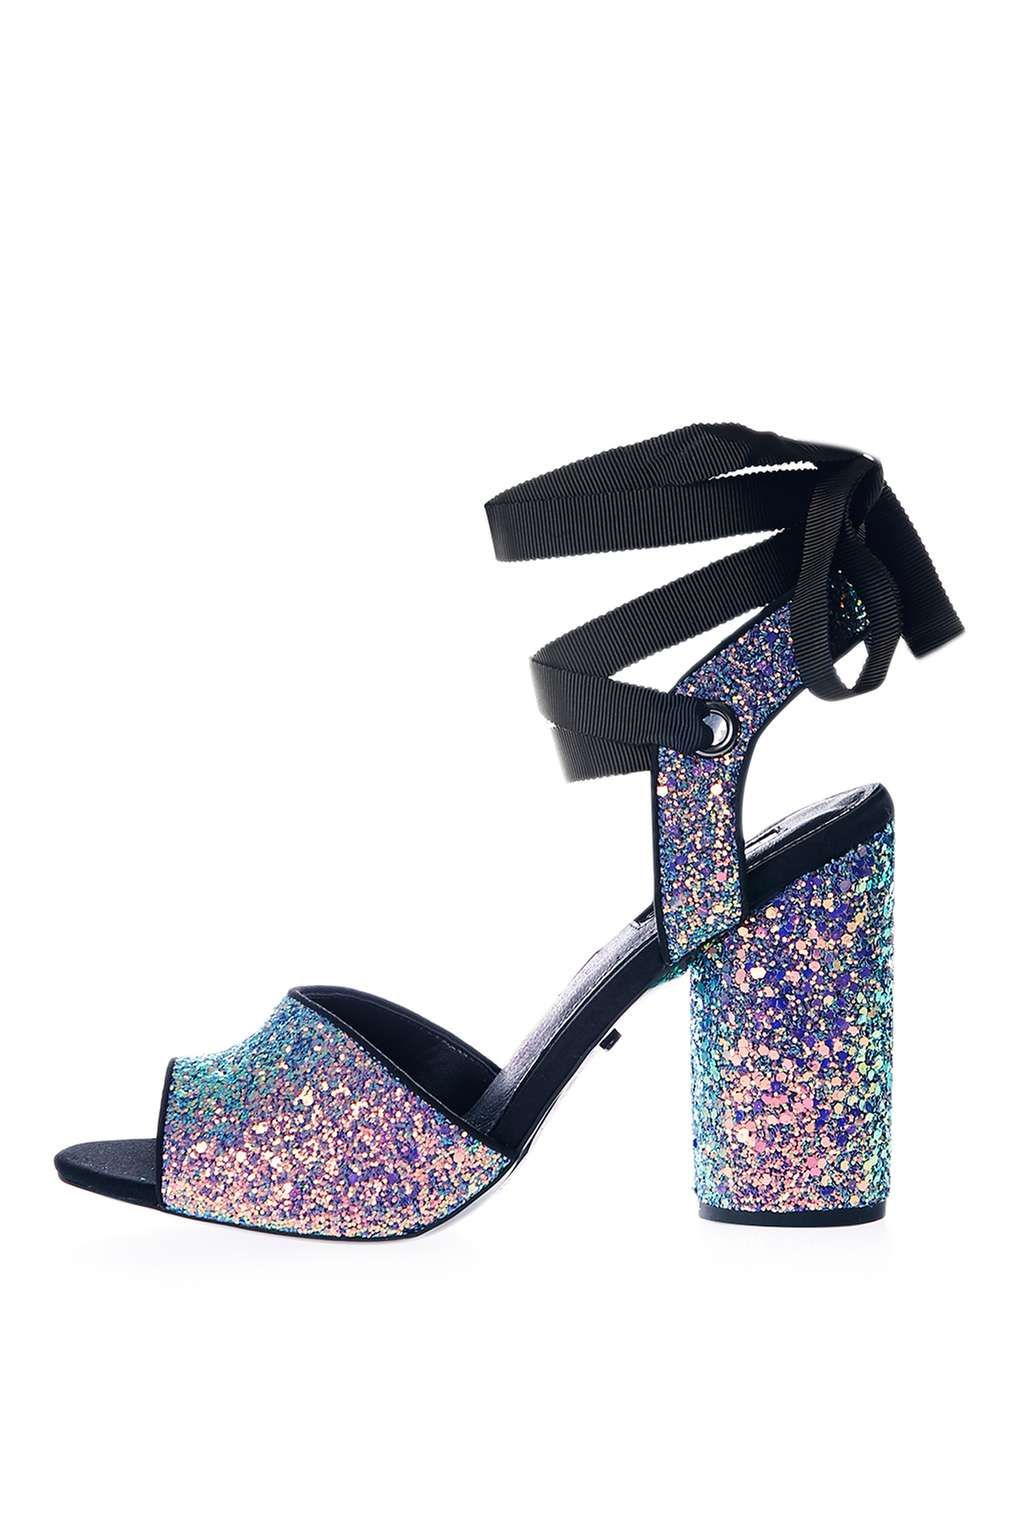 7cb5c8aa044 My Topshop Wardrobe - New In   Fancy Feet   Sparkly shoes, Glitter ...